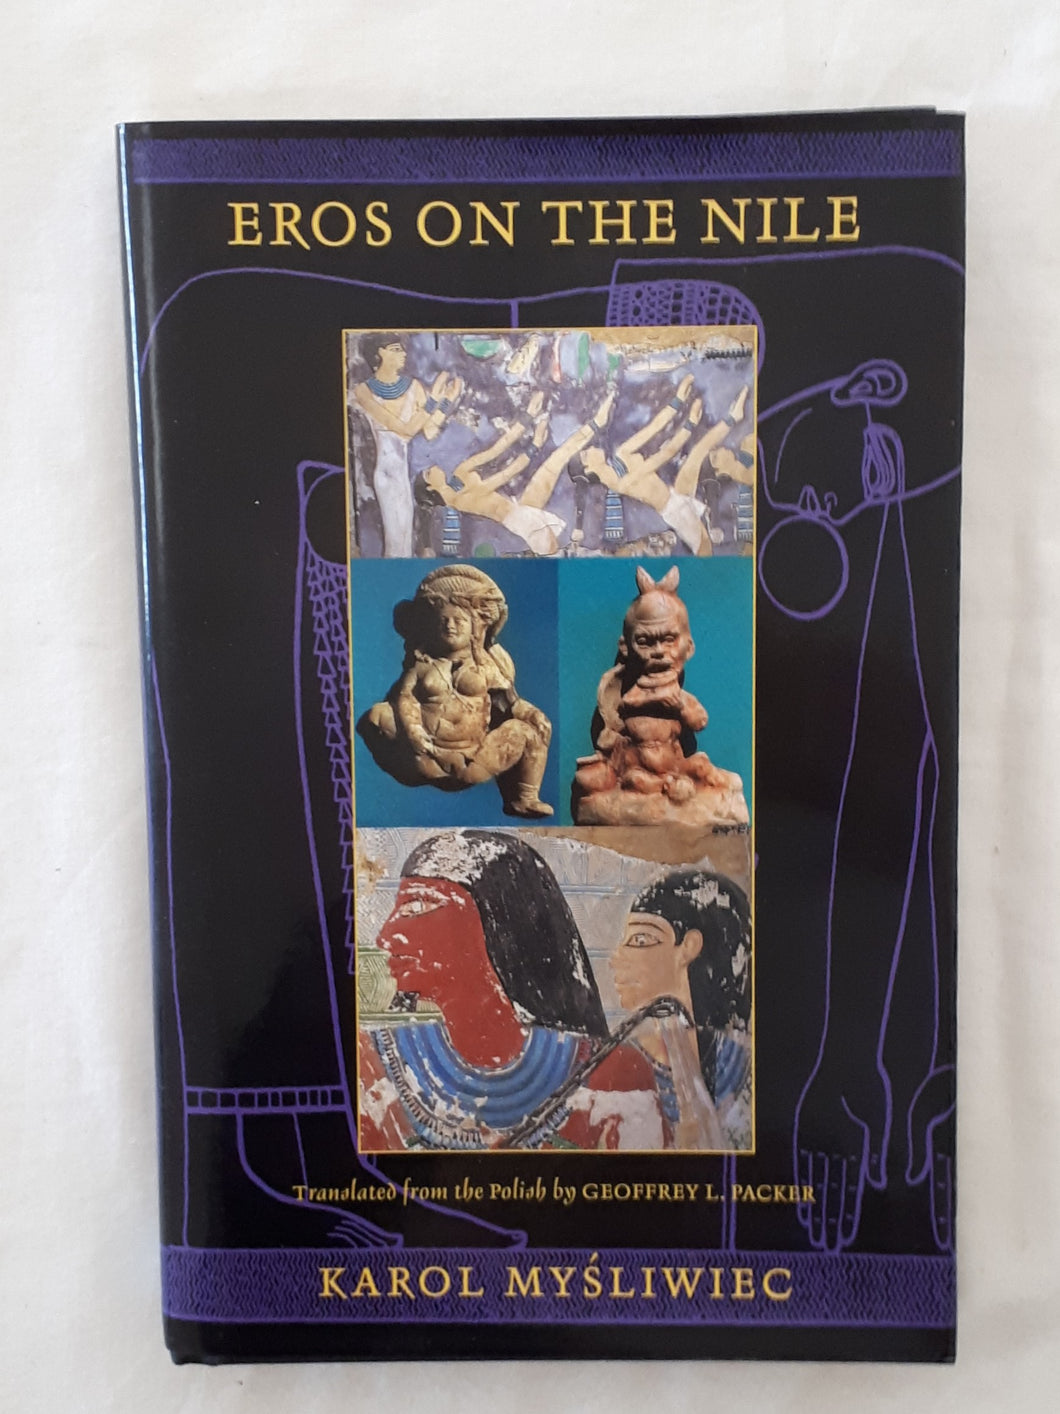 Eros on the Nile  by Karol Mysliwiec